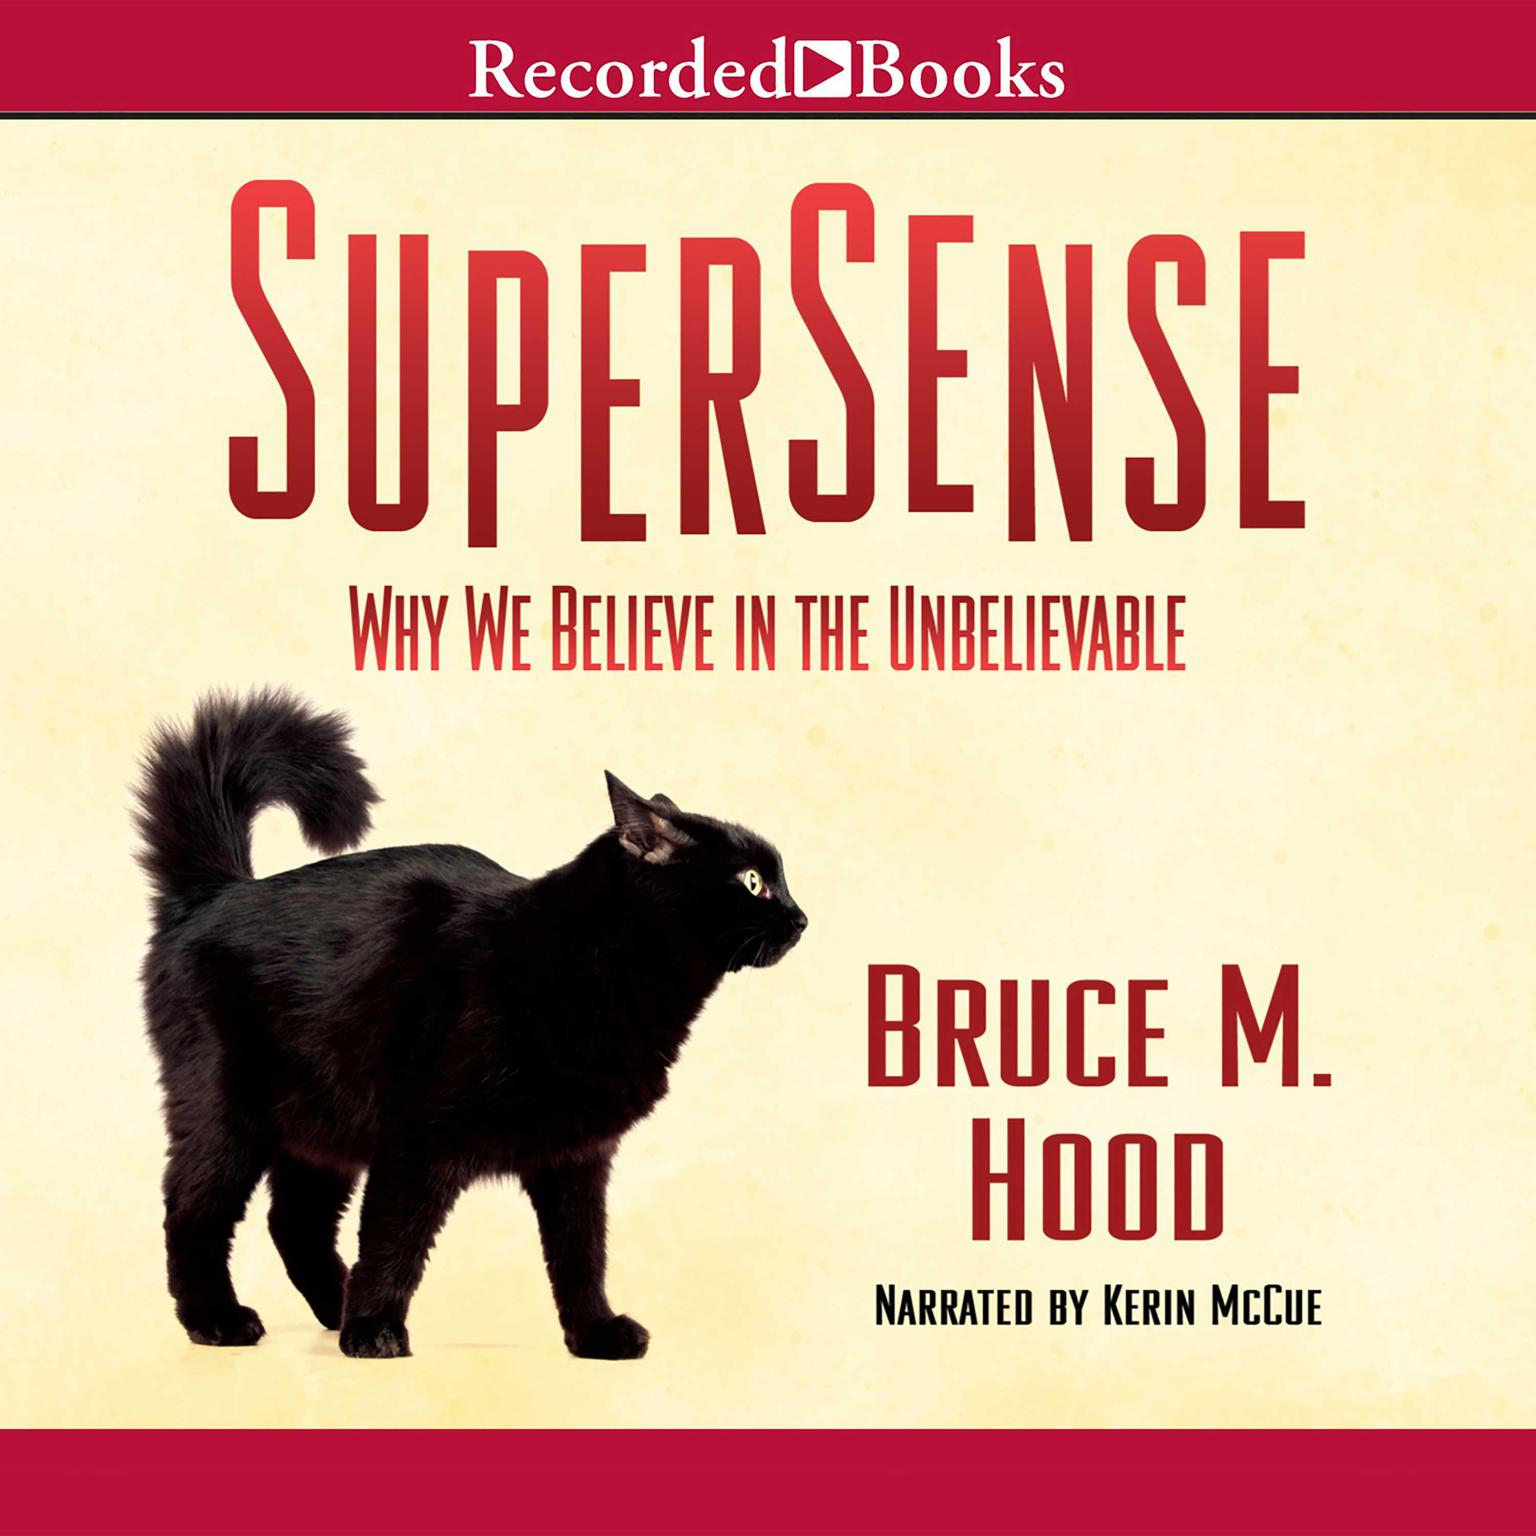 Printable SuperSense: Why We Believe in the Unbelievable Audiobook Cover Art